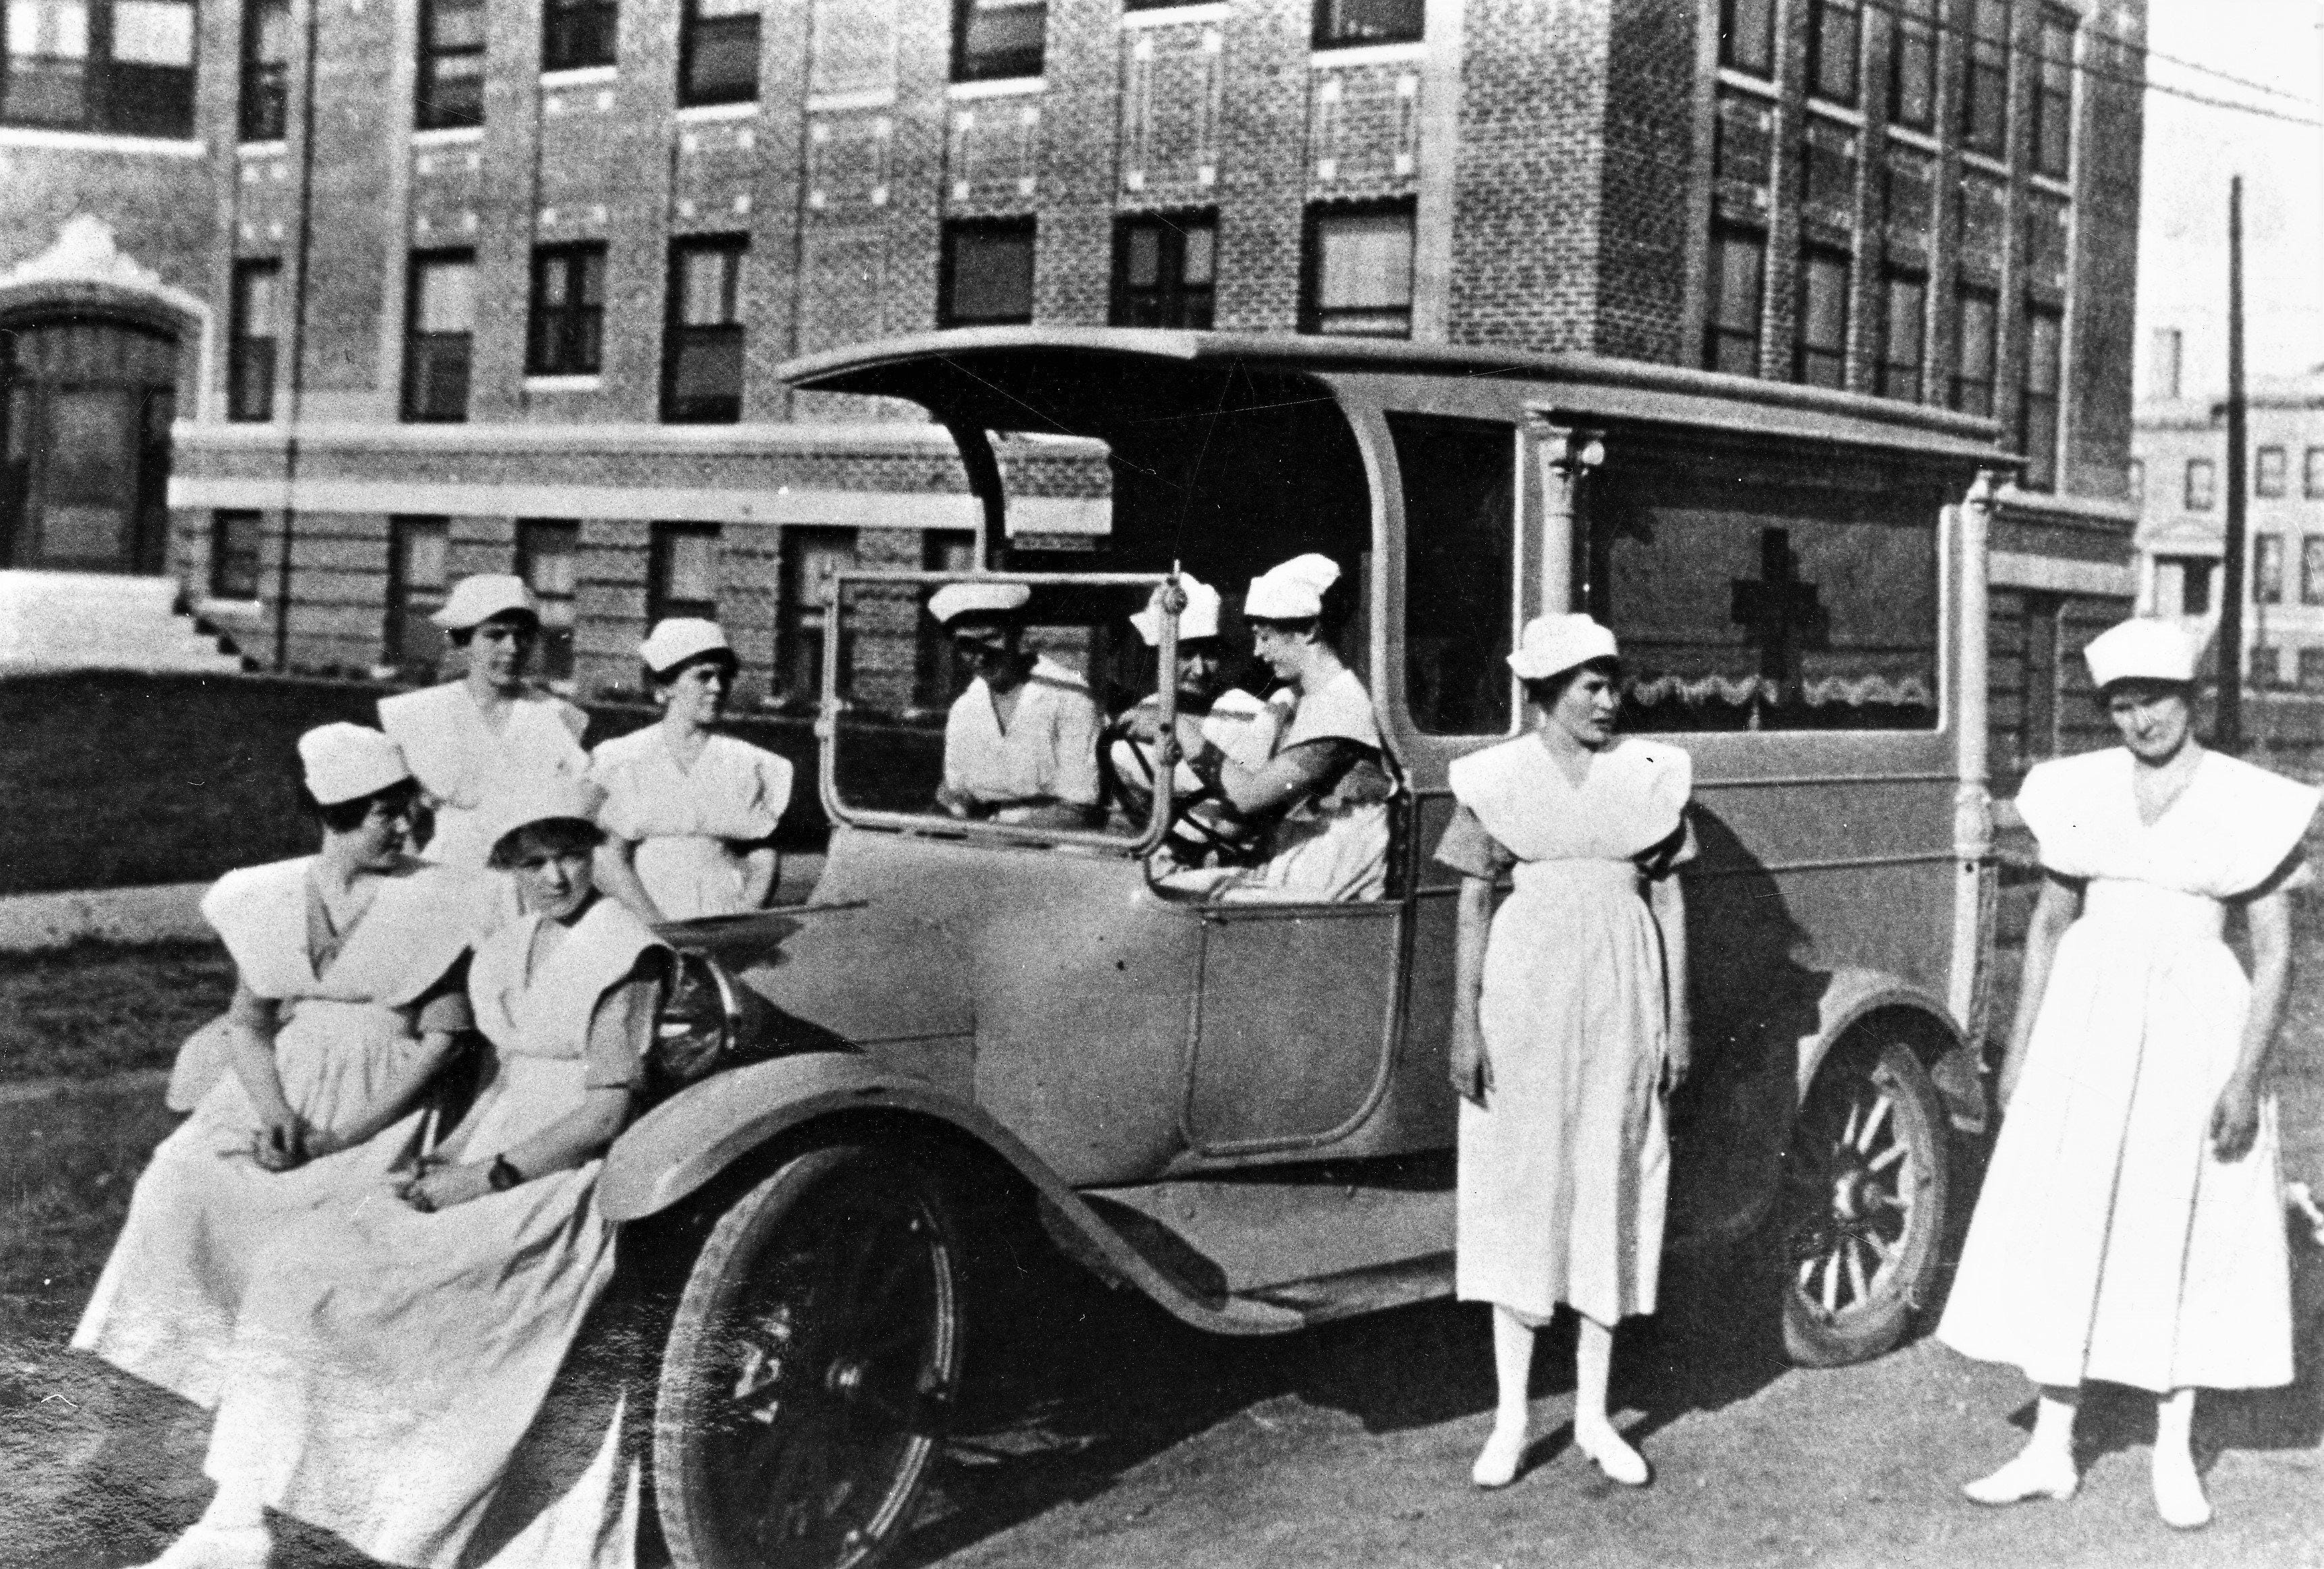 All Texas cities and many small towns responded to the flu pandemic of 1918-19 with masking, social distancing, quarantining and washing hands. They also shut down for varied lengths of time. Health facilities and personnel, such as the Lubbock Sanitarium, shown, were stretched to their limits.